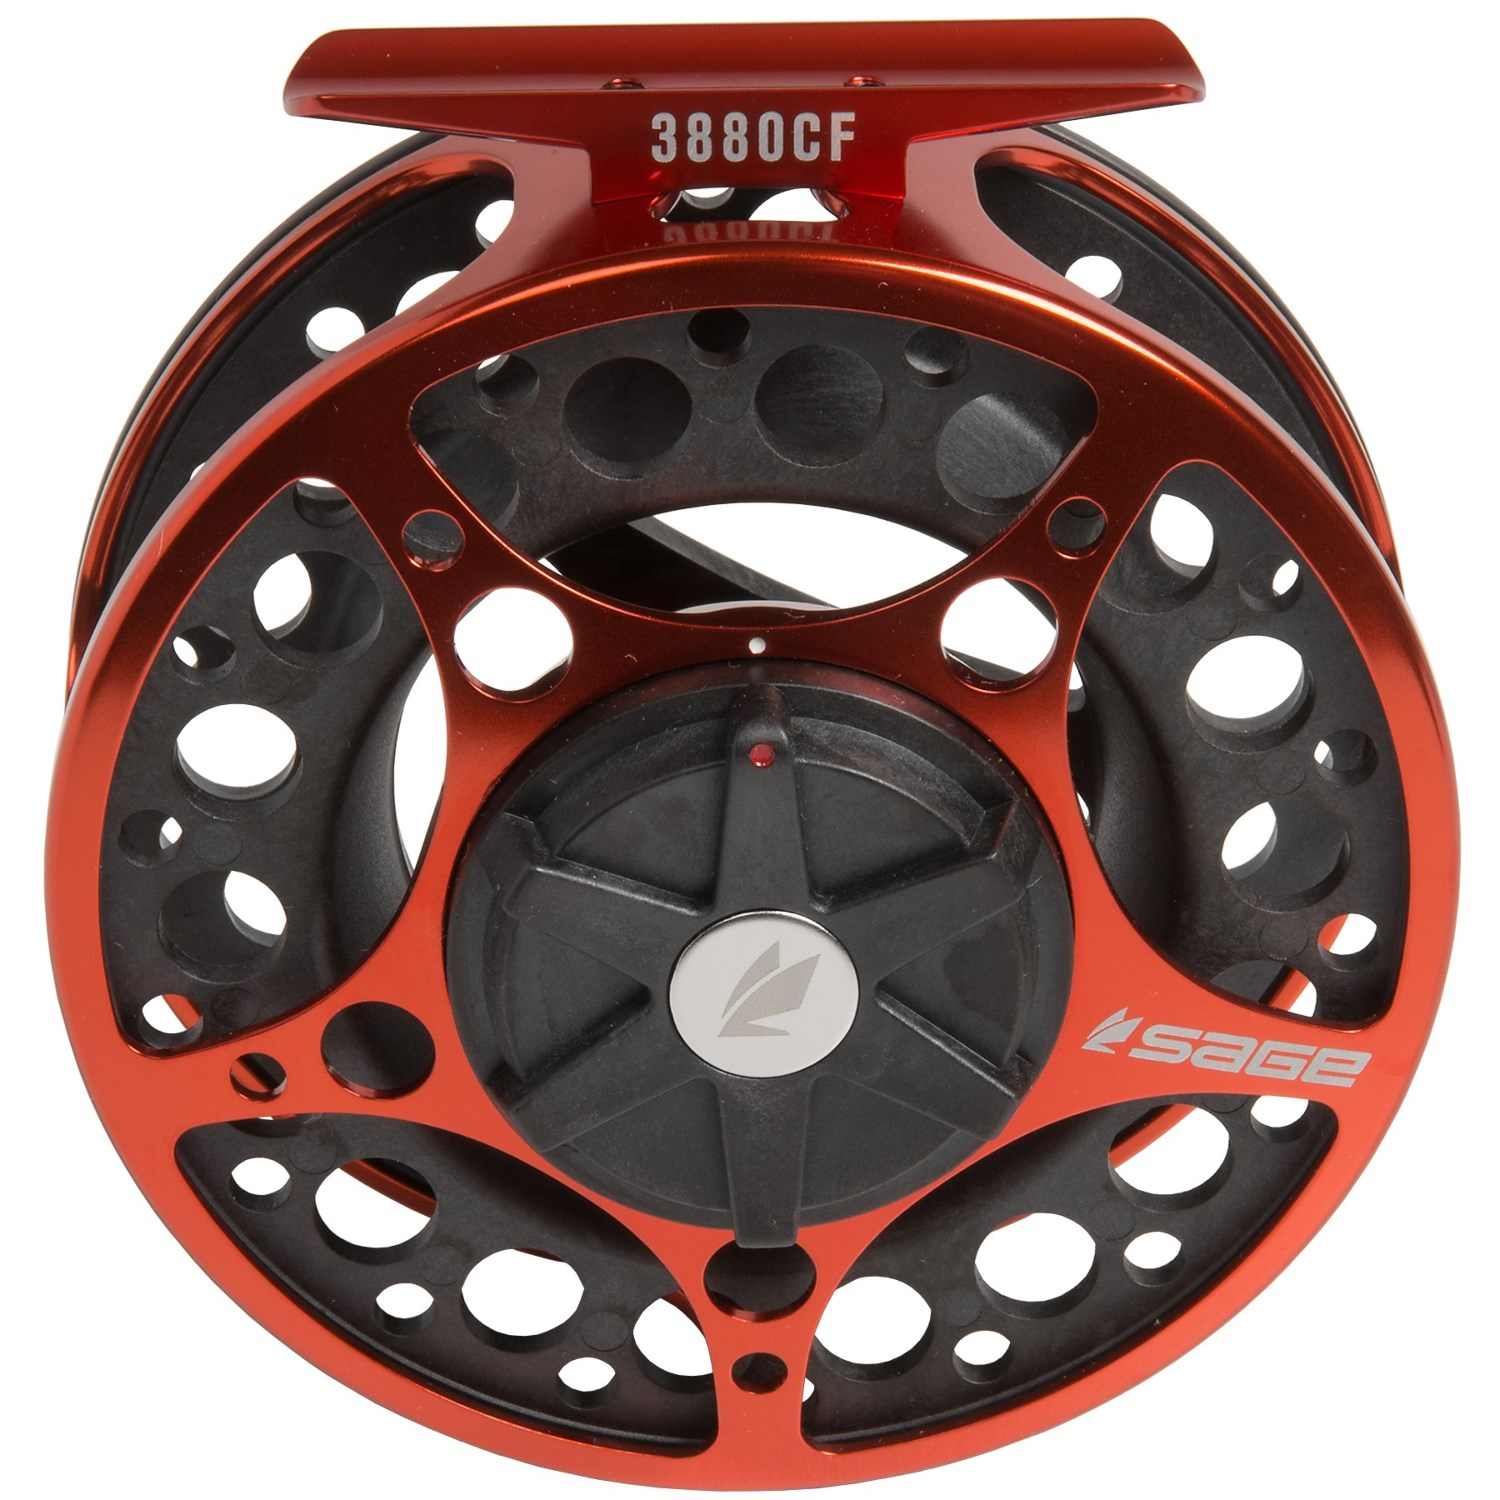 Sage 3880cf fly fishing reel 7 8wt 5316h save 63 for Fly fishing closeouts